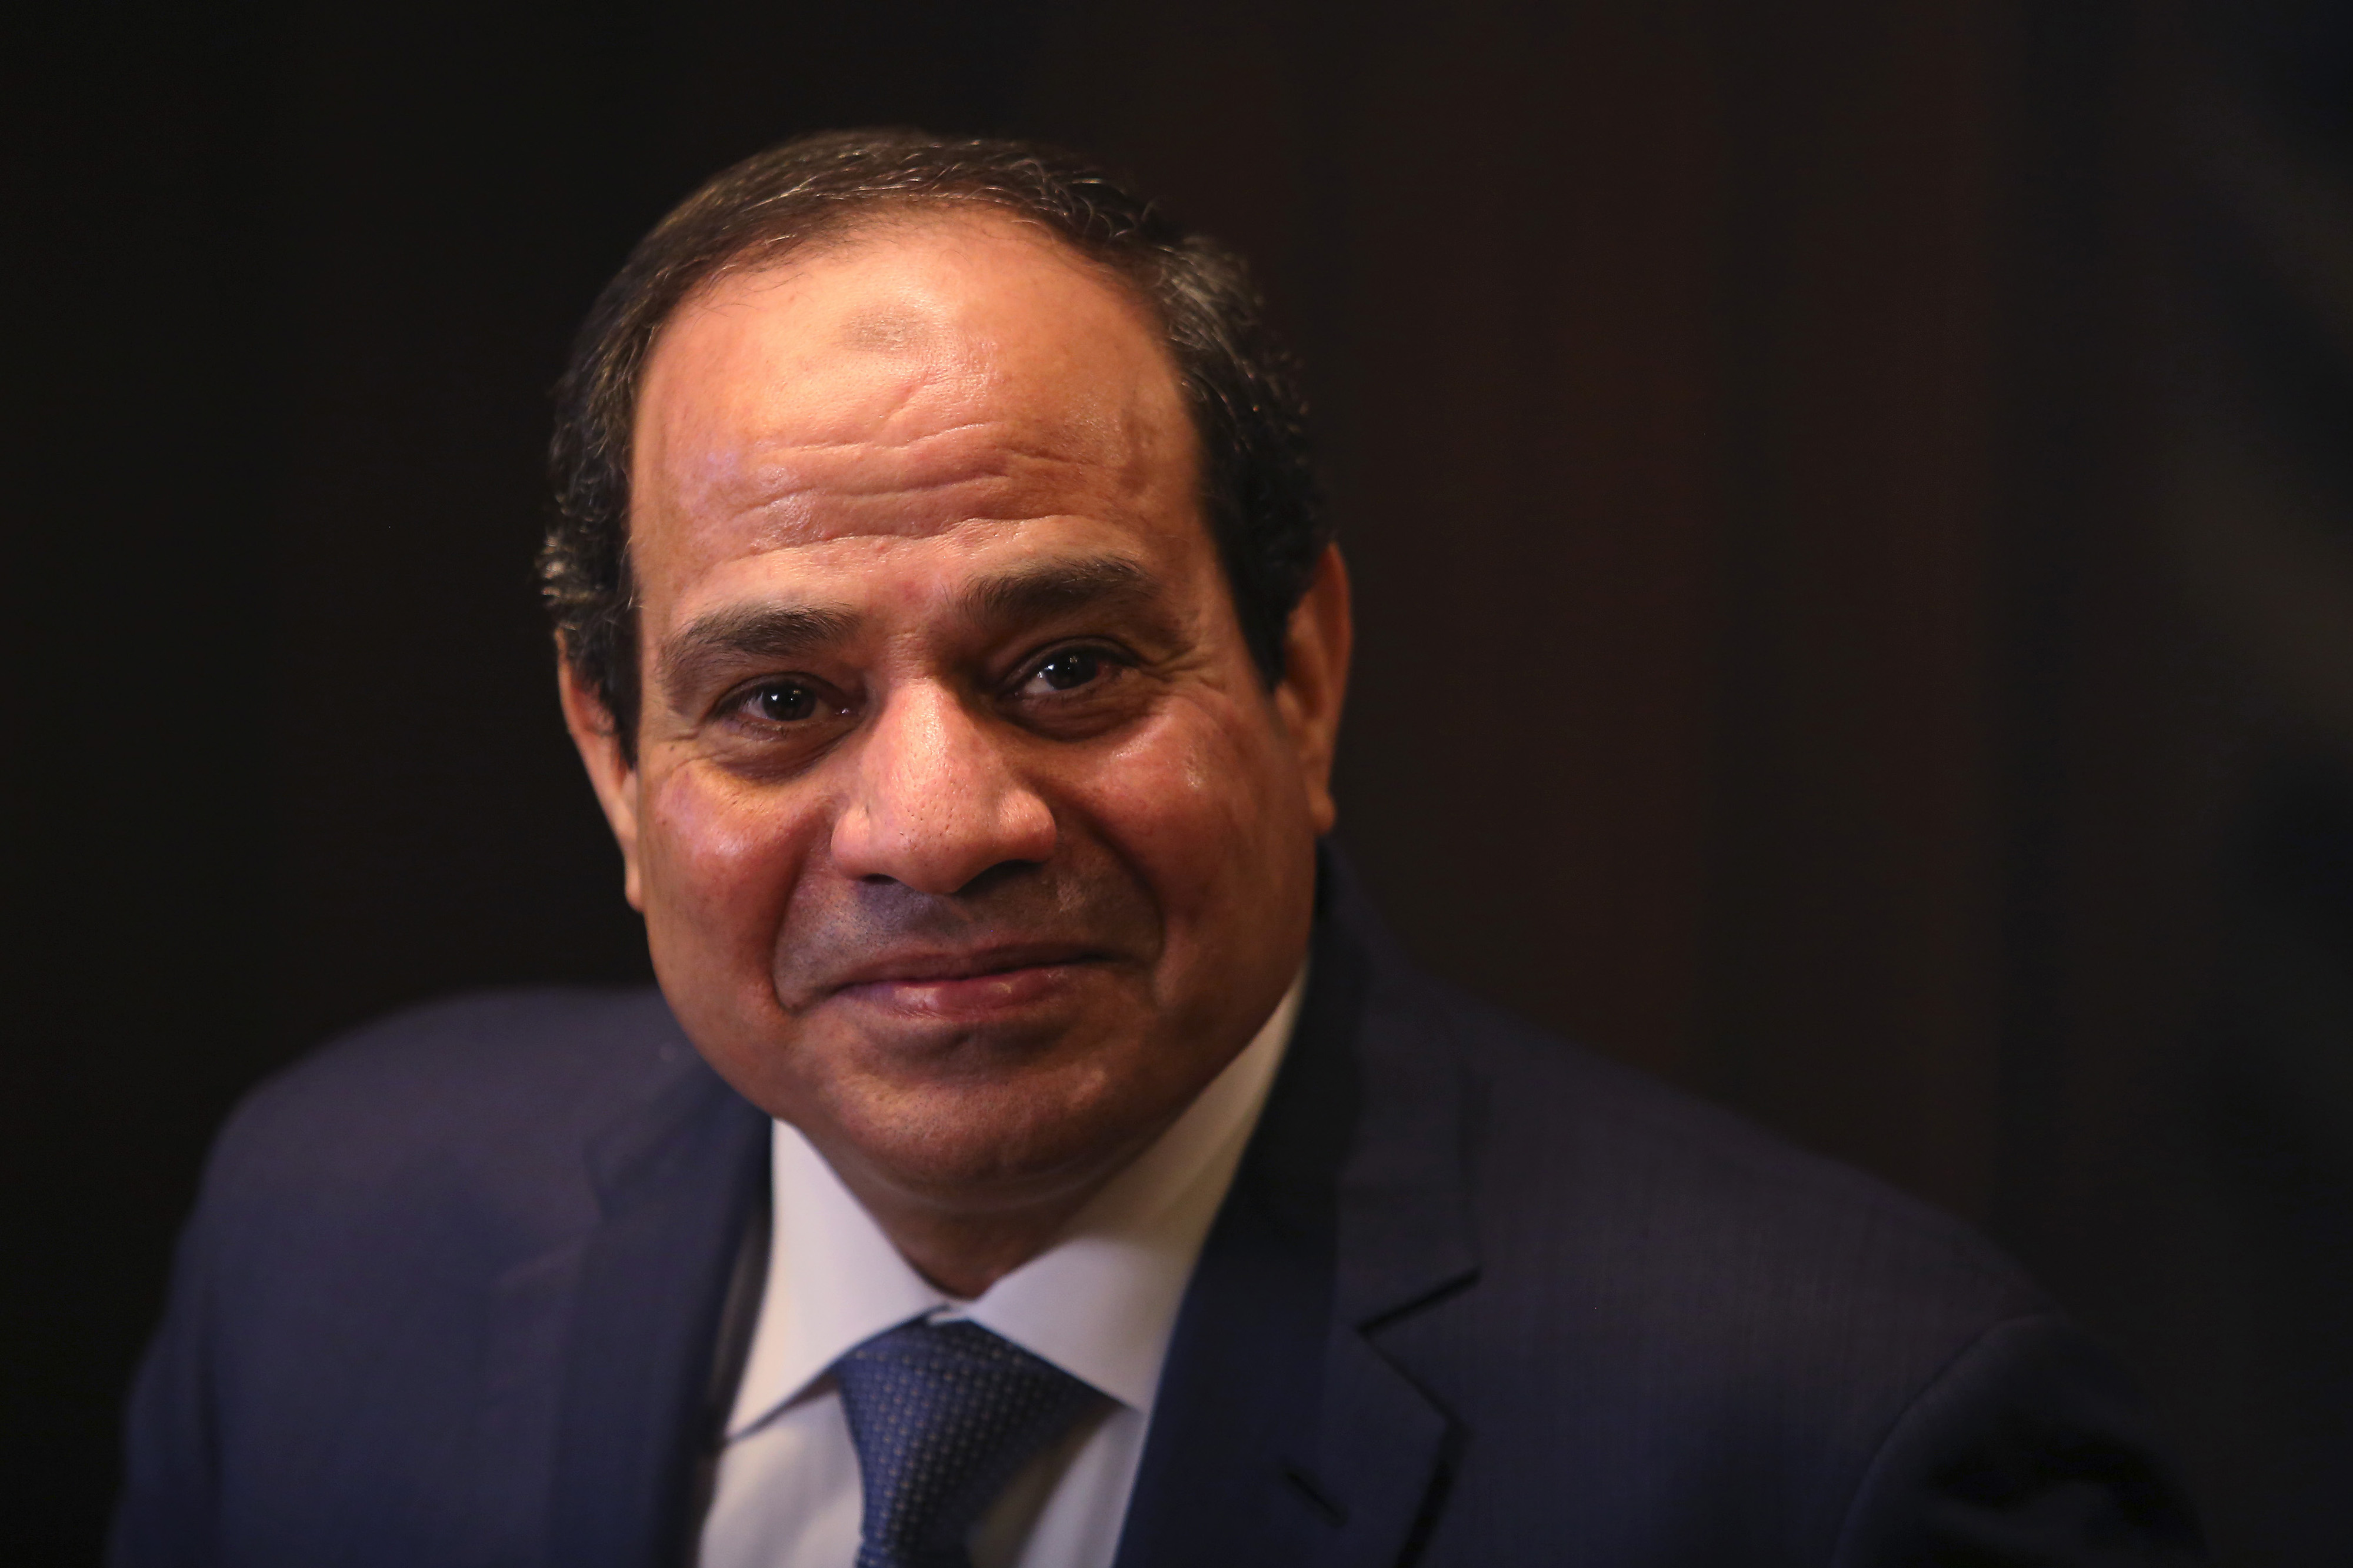 Abdel-Fattah El-Sisi, Egypt's president, pauses during a Bloomberg Television interview on day two of the World Economic Forum (WEF) in Davos, Switzerland, on Jan. 22, 2015.